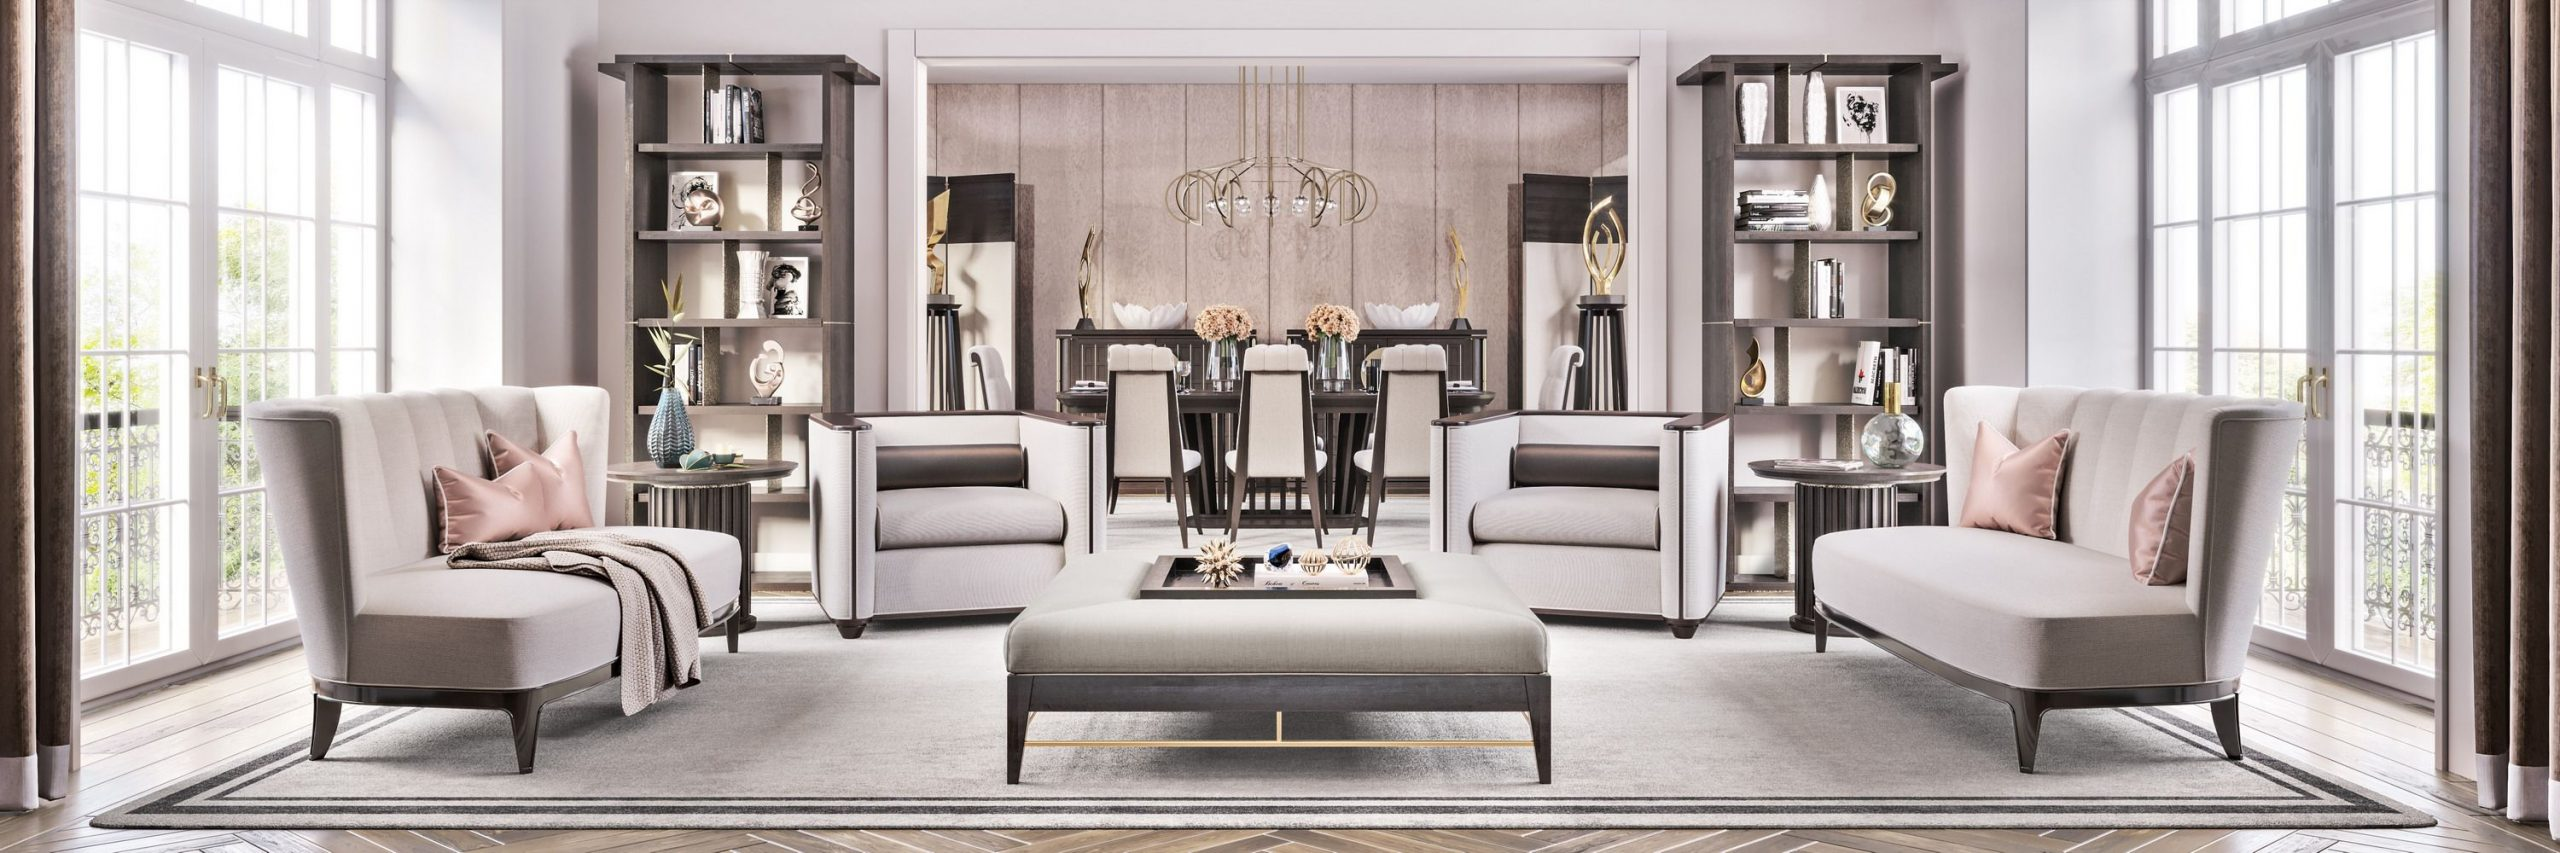 Shepel - Mobilier Living William - Mobilier Dining Vally